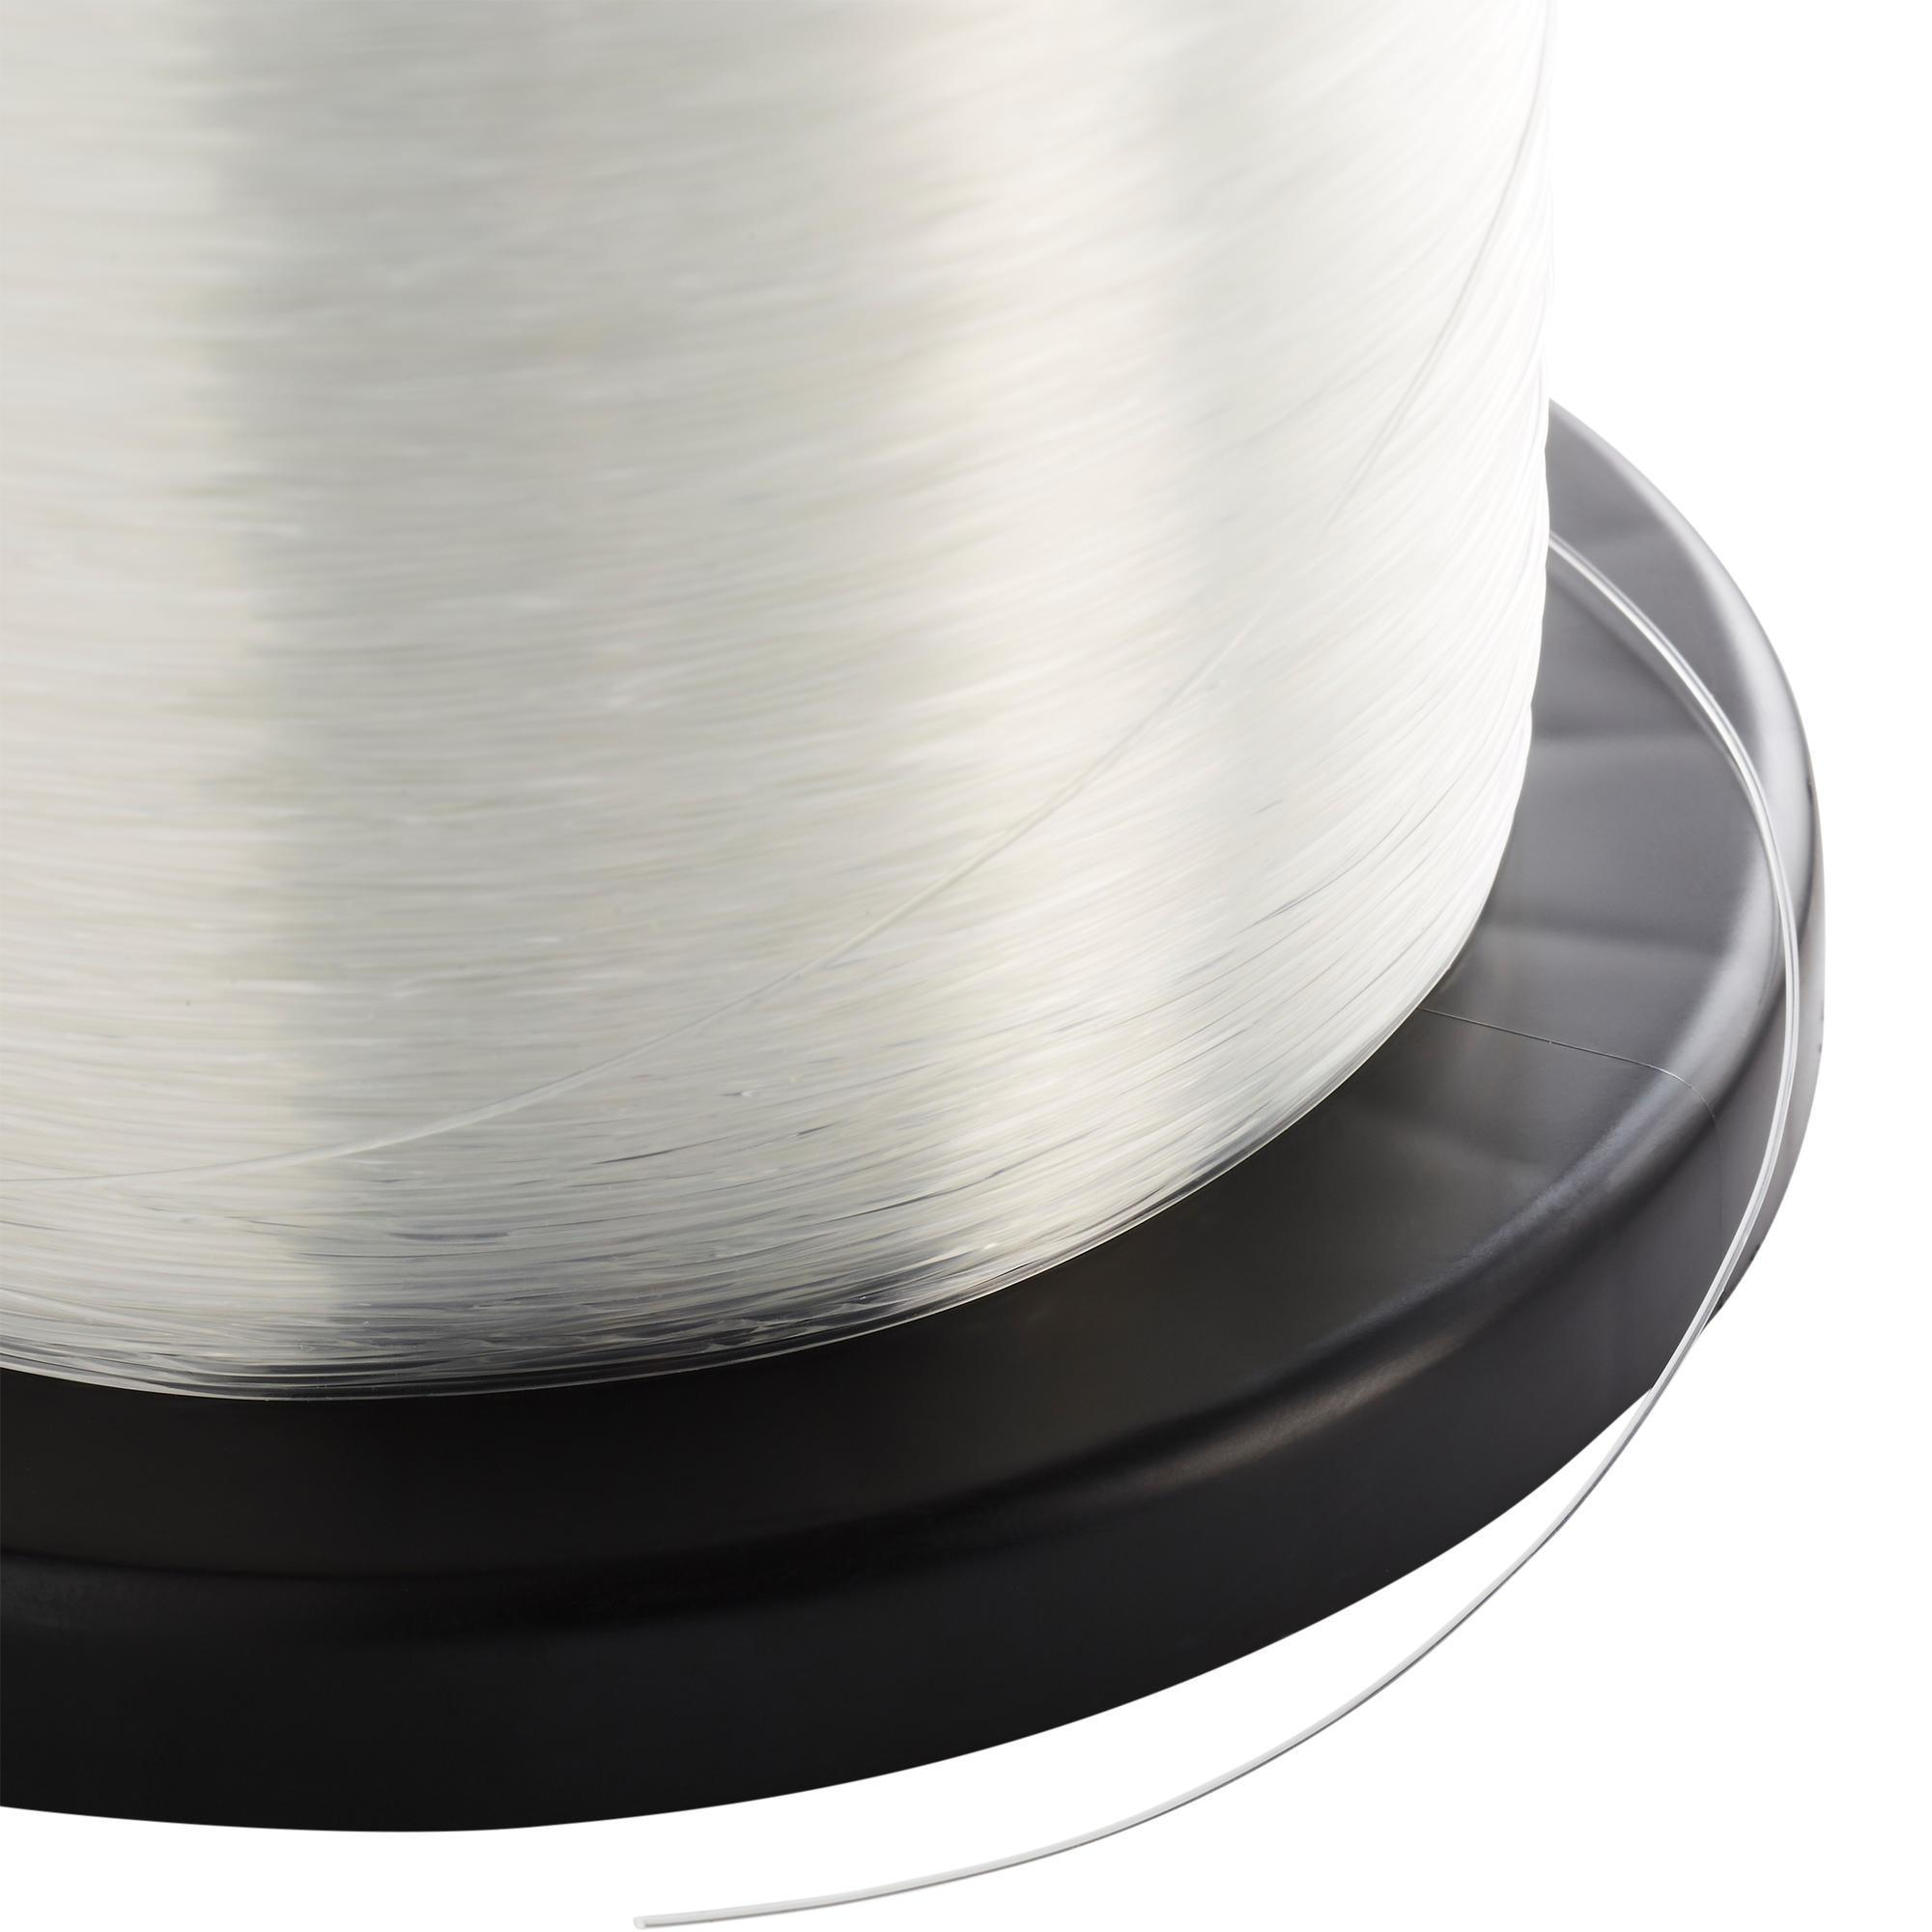 New 100m Crystal Fishing Line Clear Smooth Monofilament Line Spool Pond Lakes-UK